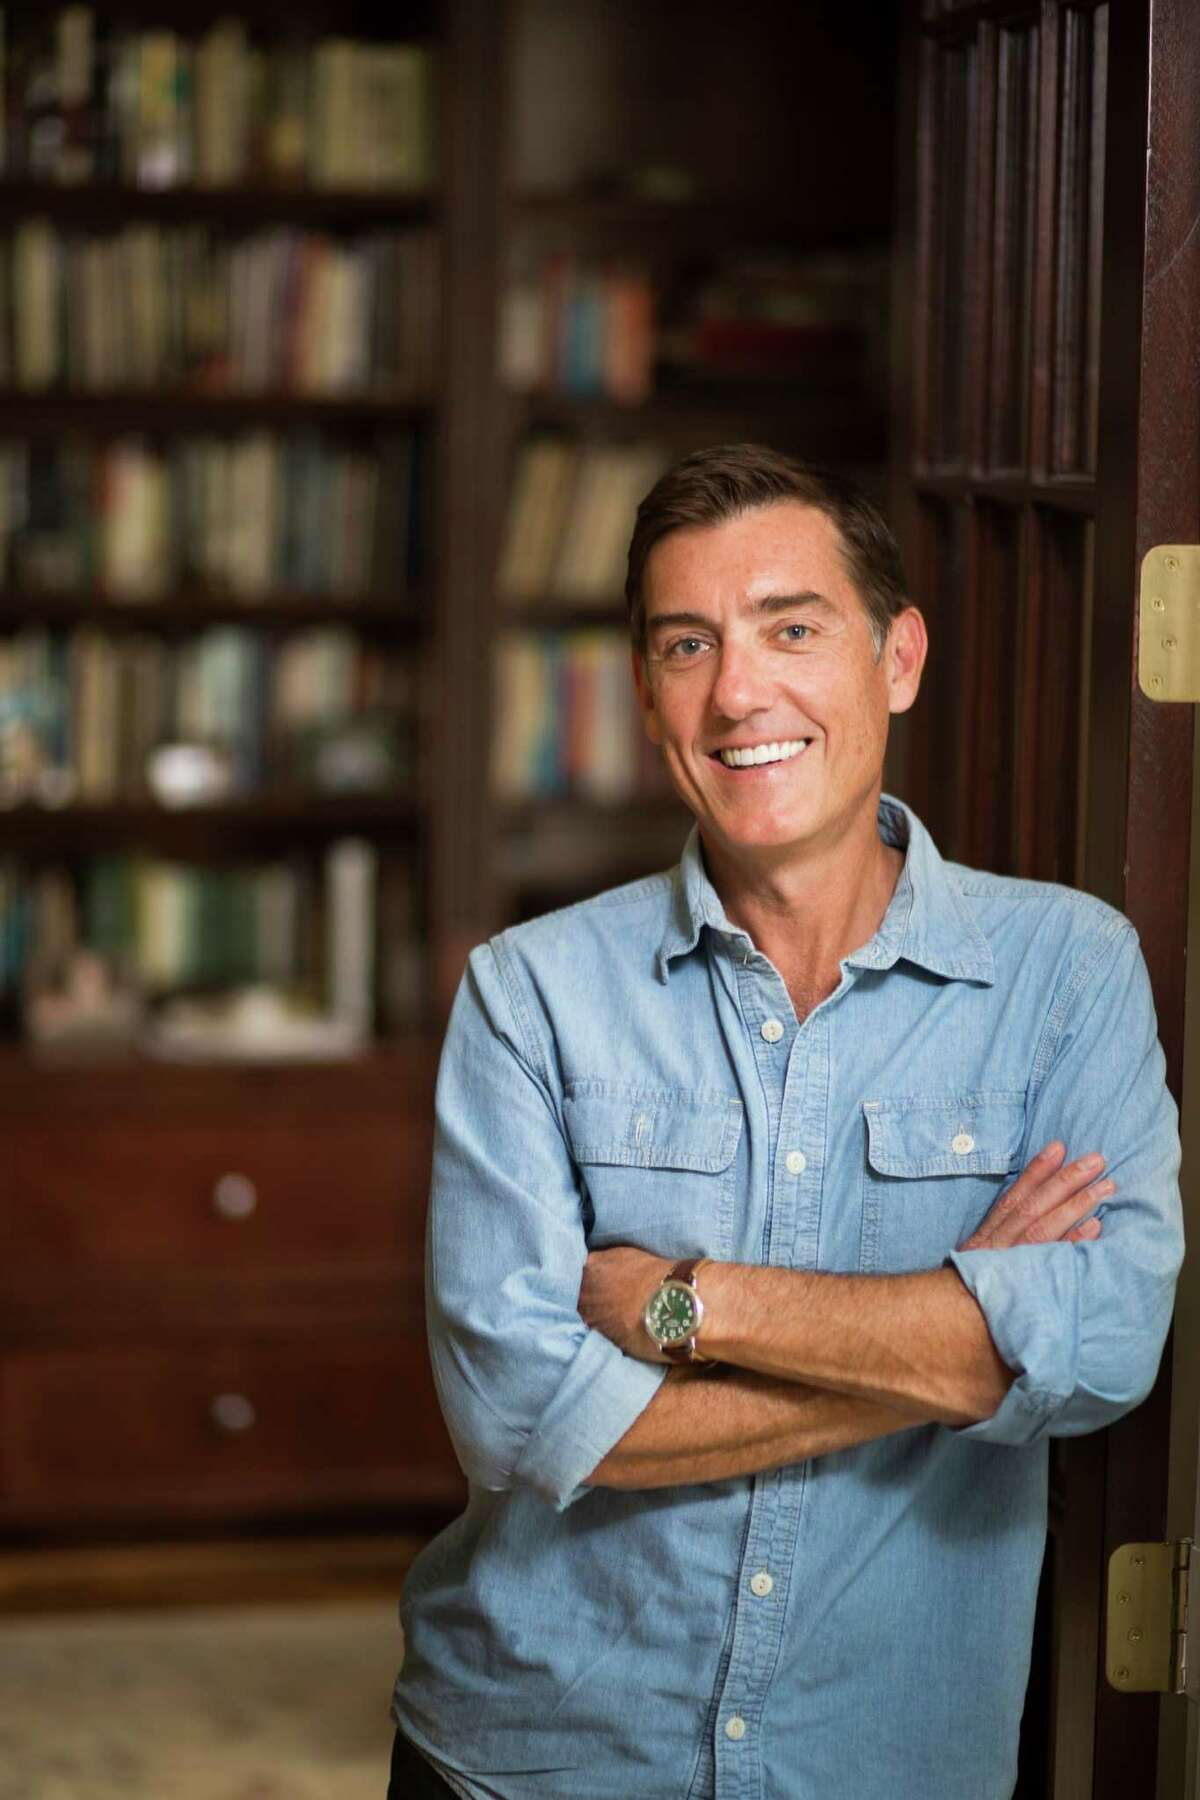 Justin Cronin, a bestselling author who lives in Bellaire, has seen his career explode with the publication of his series of vampire thrillers. Cronin is a former professor of English at Rice University.